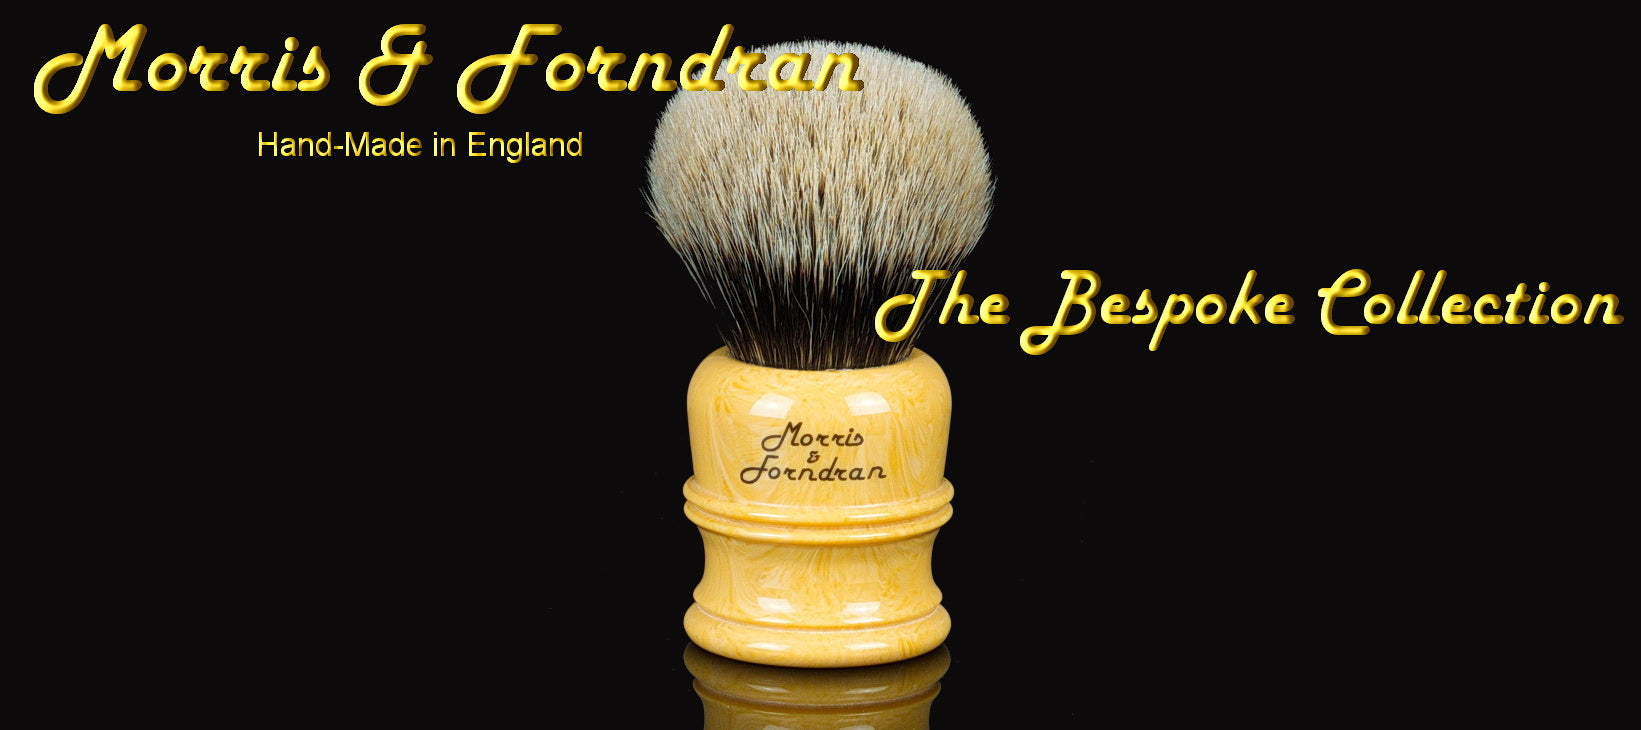 The Morris & Forndran Bespoke Collection